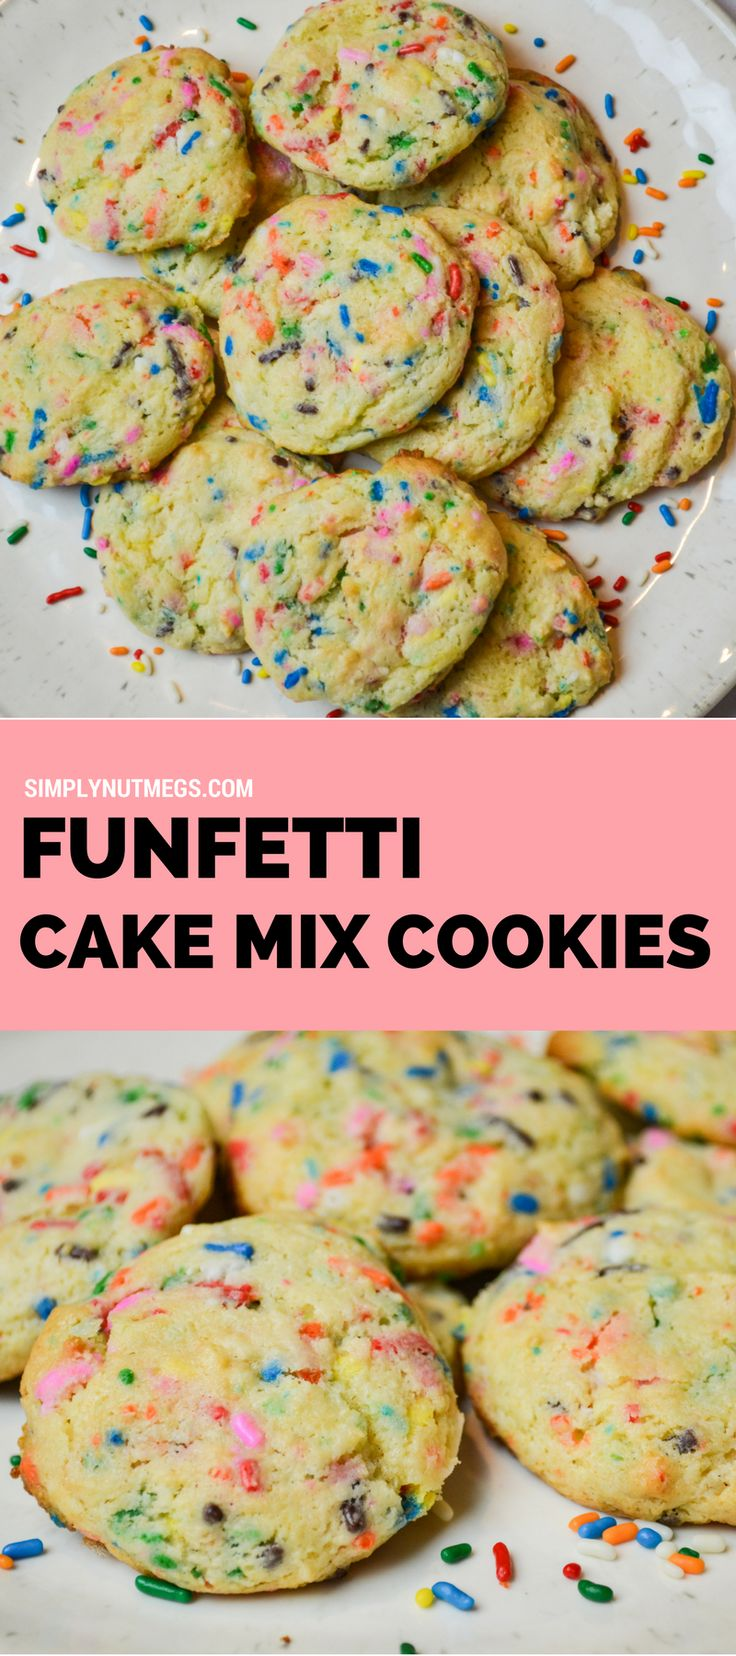 INSANELY DELICIOUS Funfetti Cake Mix Cookies!!!!